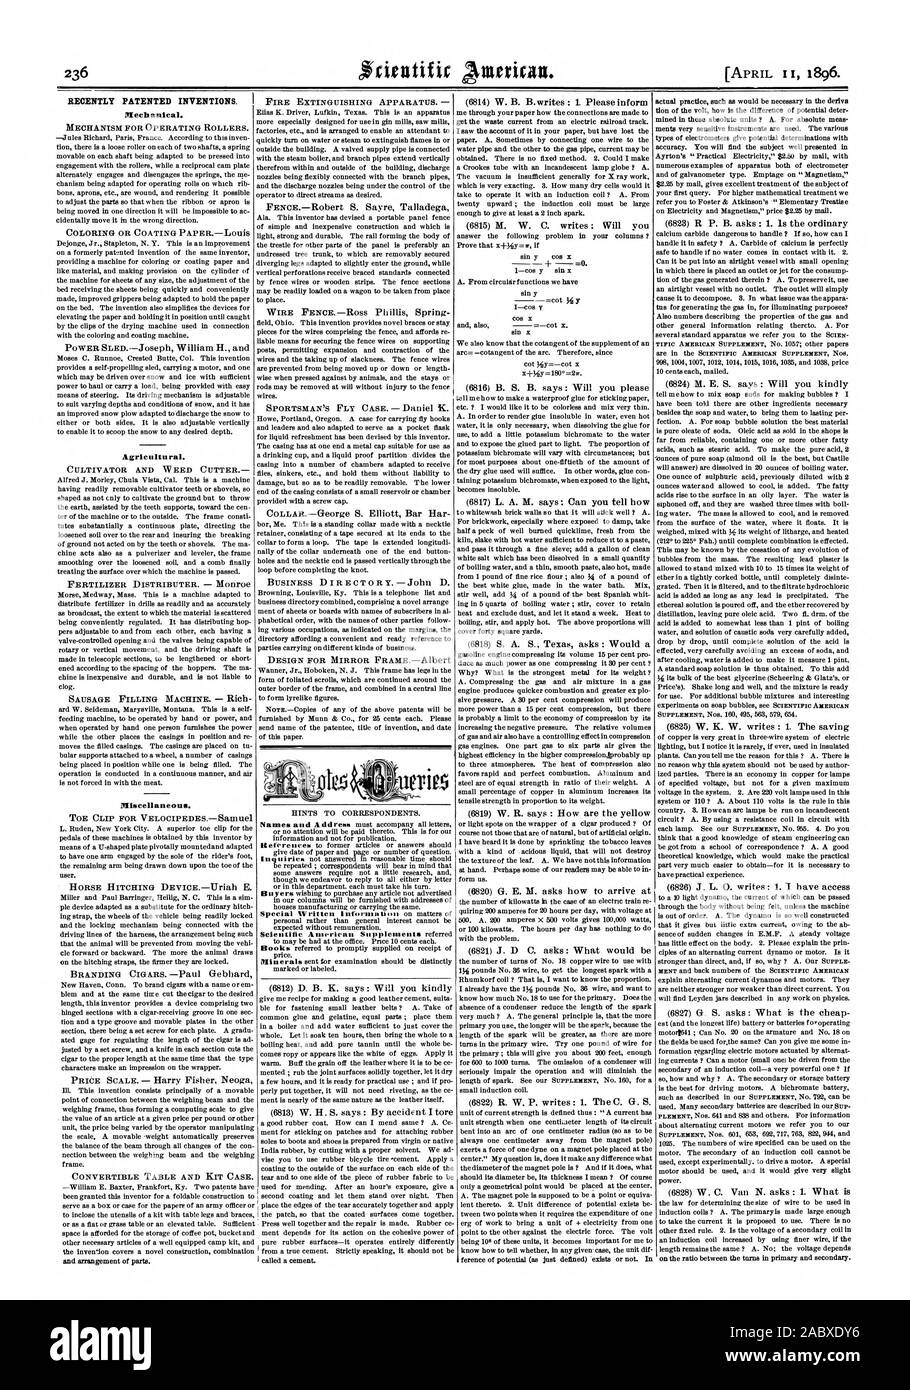 RECENTLY PATENTED INVENTIONS. Mechanical. MECHANISM FOR OPERATING ROLLERS. Agricultu ral. CULTIVATOR AND WEED CUTTER FERTILIZER DISTRIBUTER. — Monroe Miscellaneous. TOE CLIP FOR VELOCIPEDESSamuel and arrangement of parts. FIRE EXTINGUISHING APPARATUS.  sin y 1—cos y form us. on the ratio between the tame in primary and secondary., scientific american, 1896-0 Stock Photo